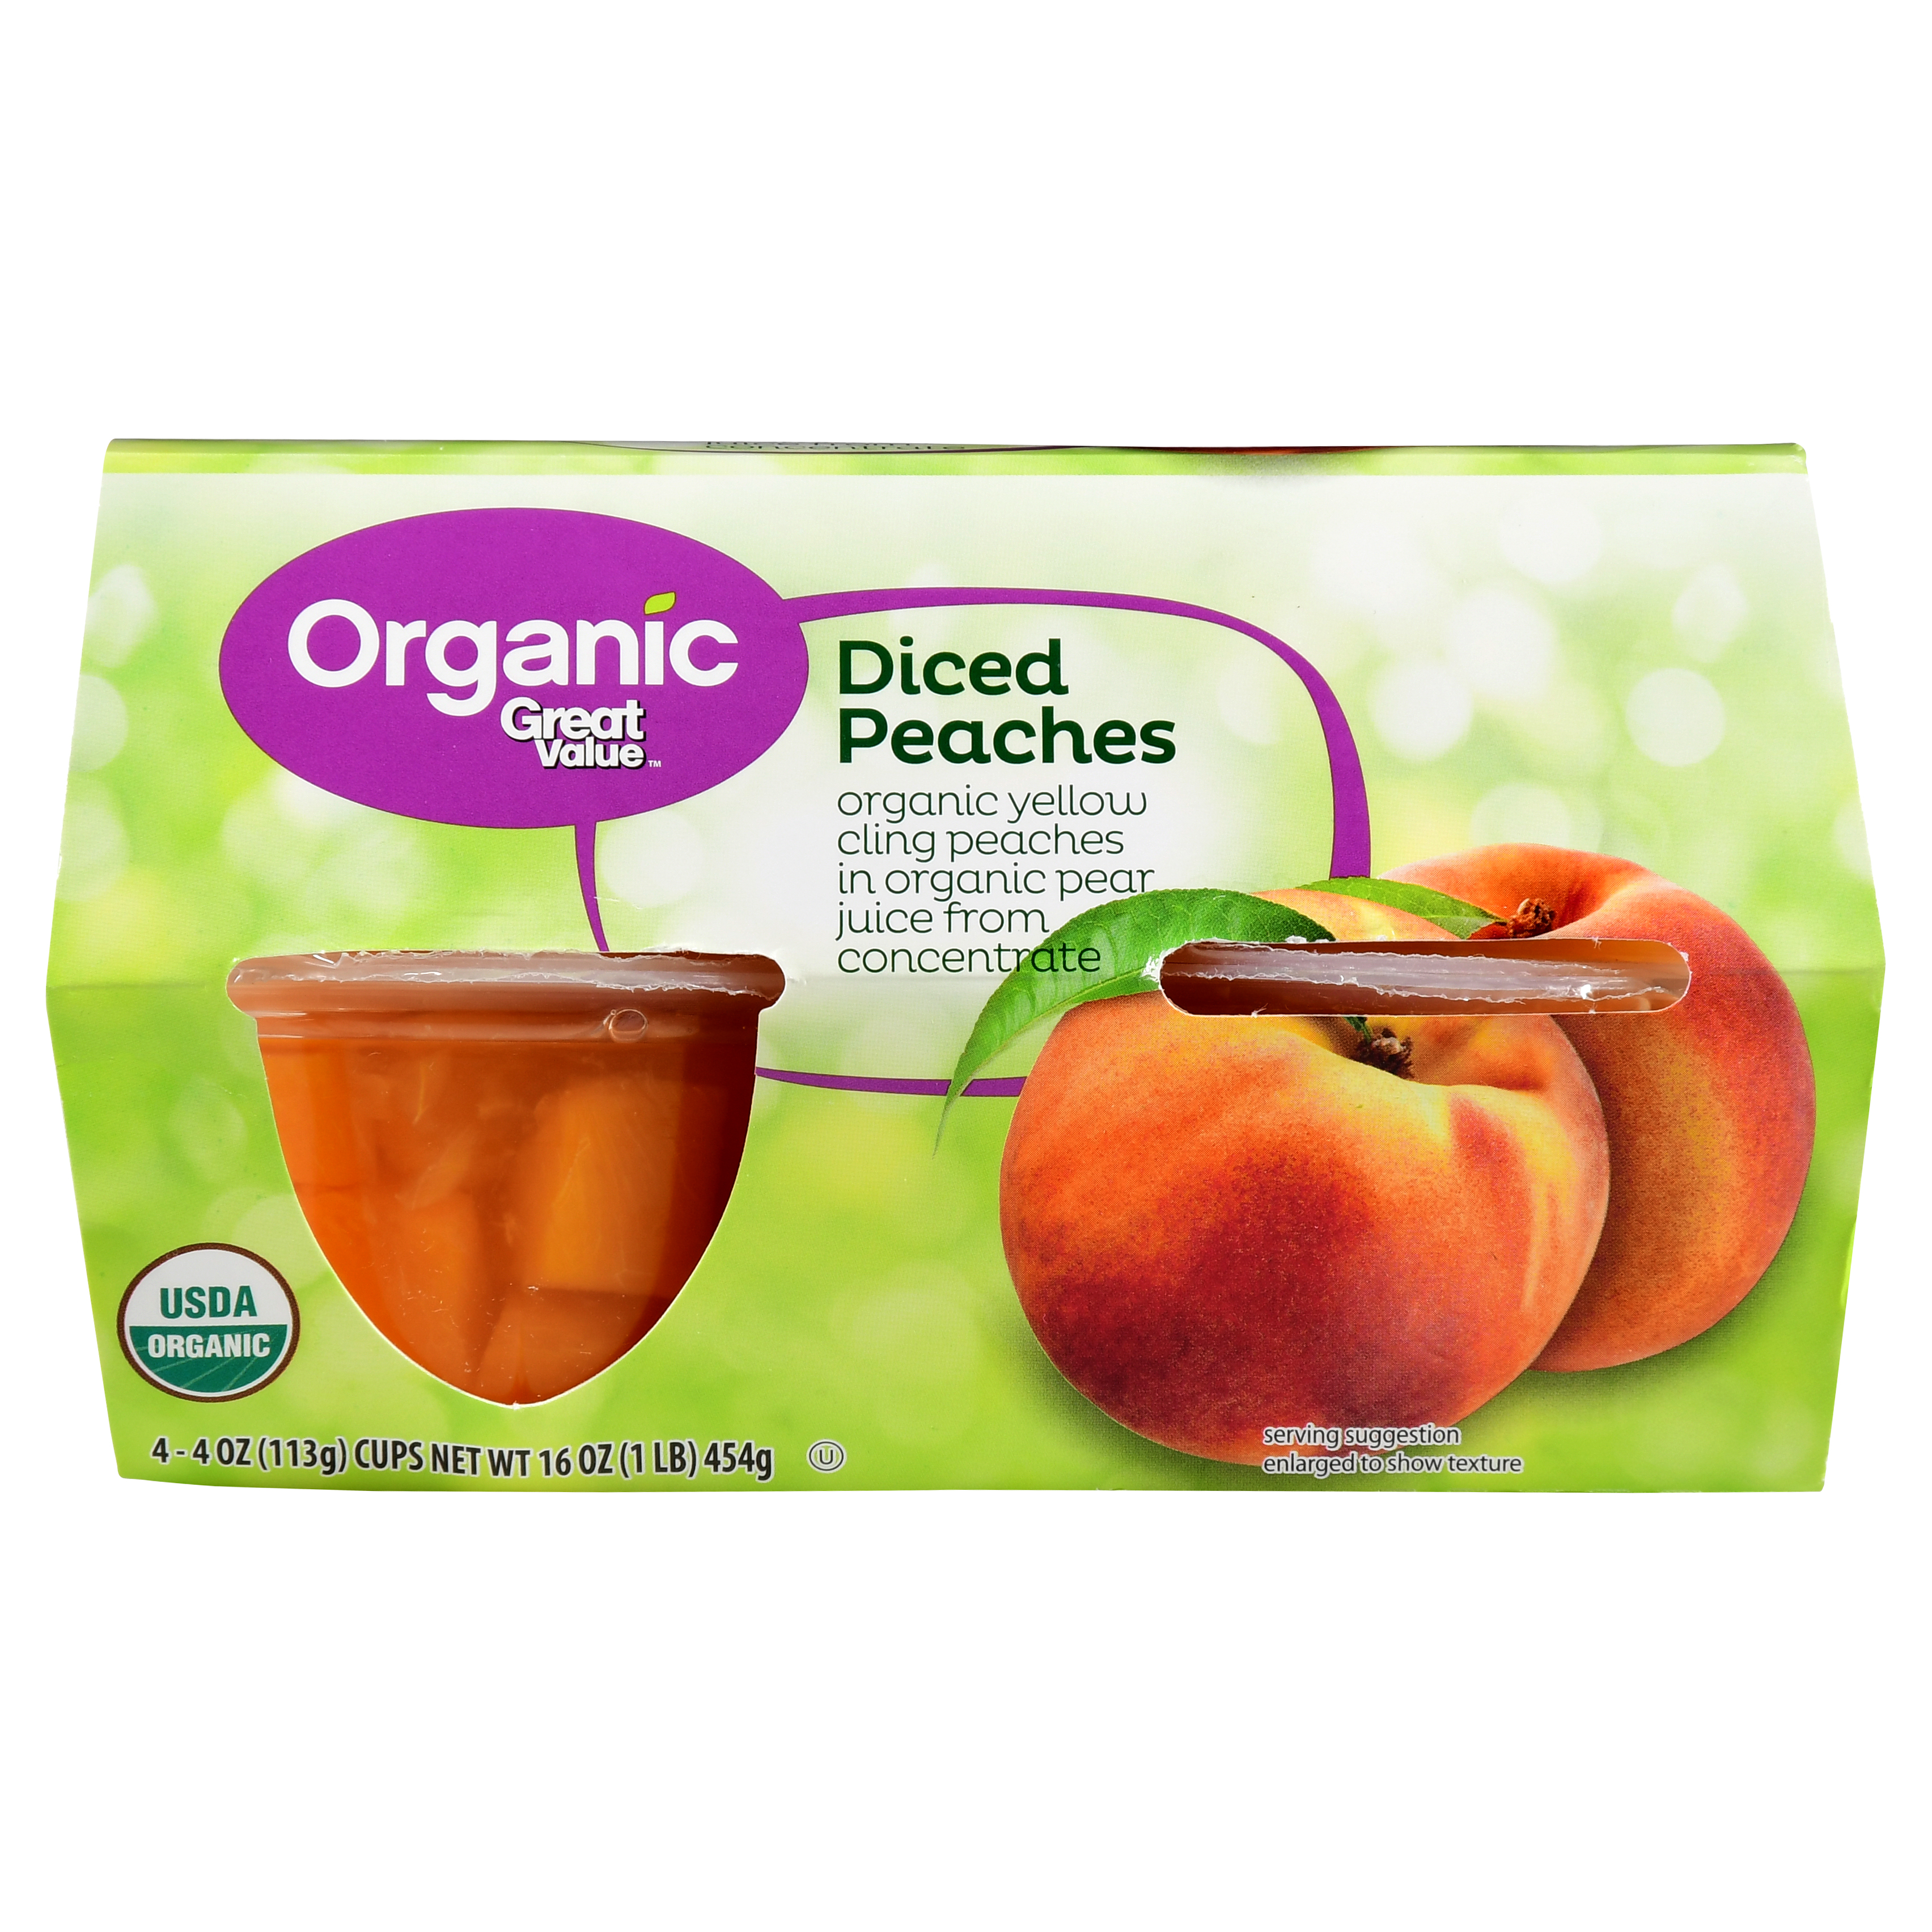 Great Value Organic Diced Peaches, 16 oz, 4 Count